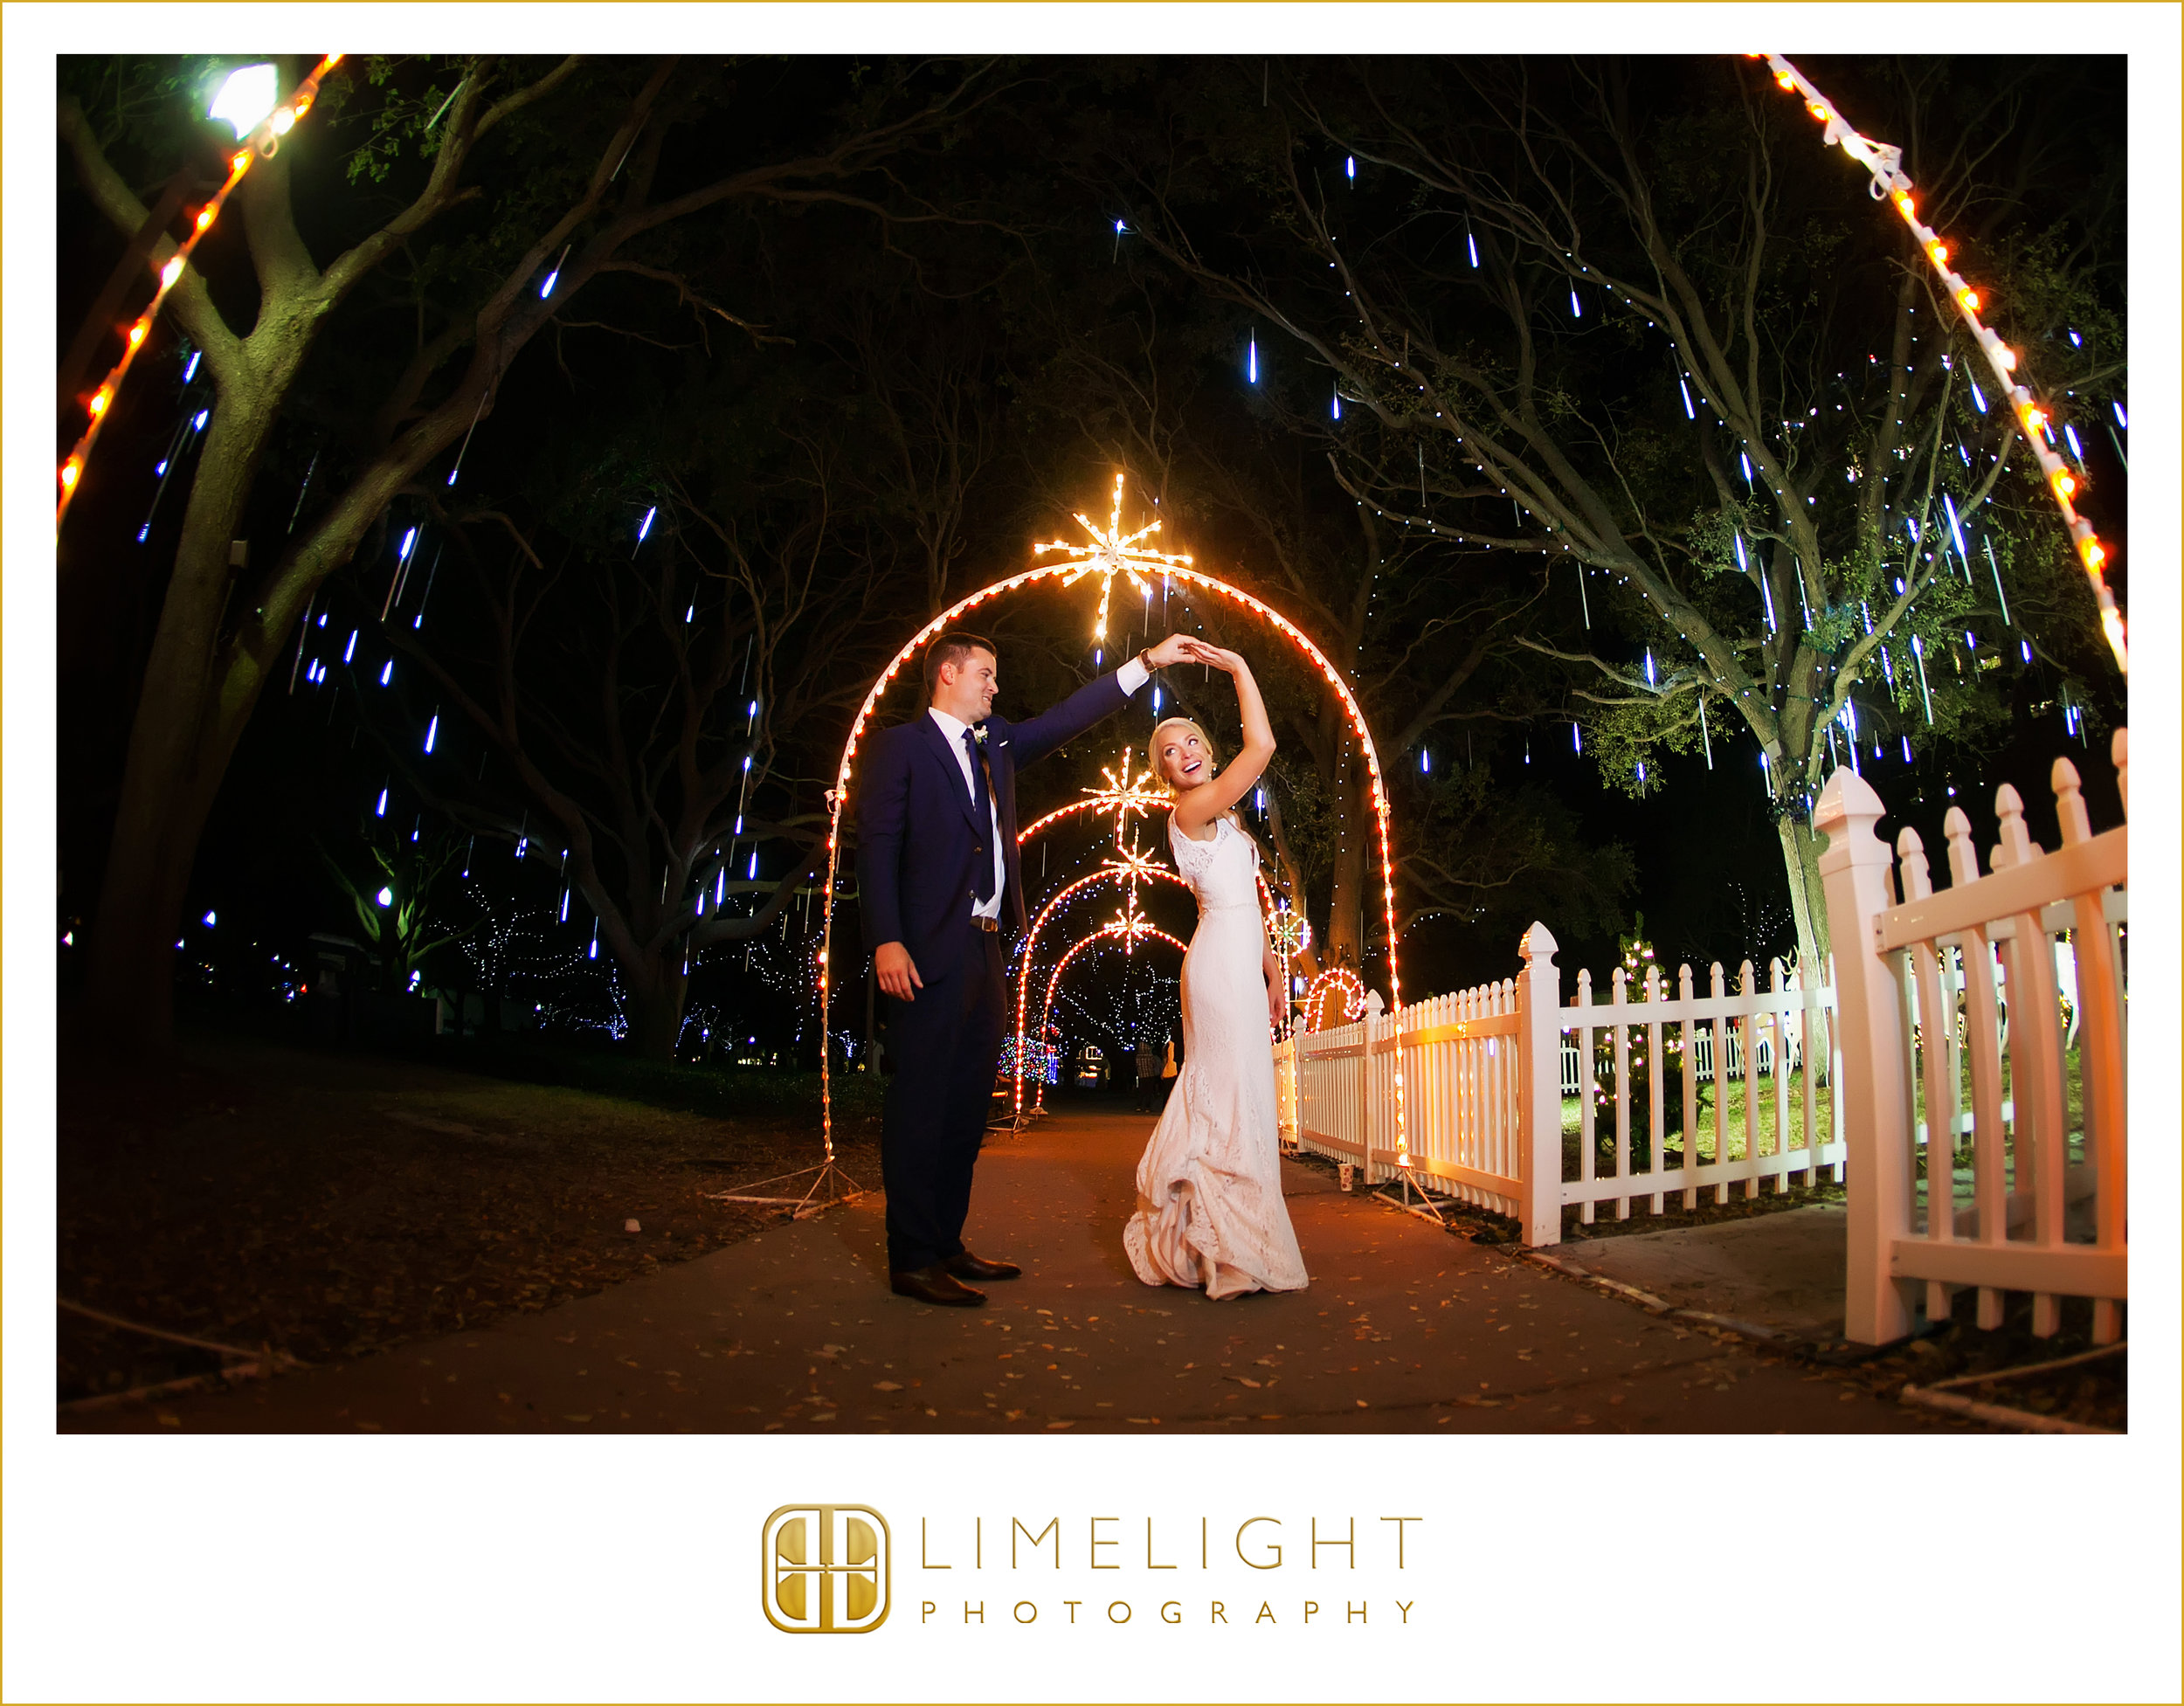 Lights | Details | Wedding